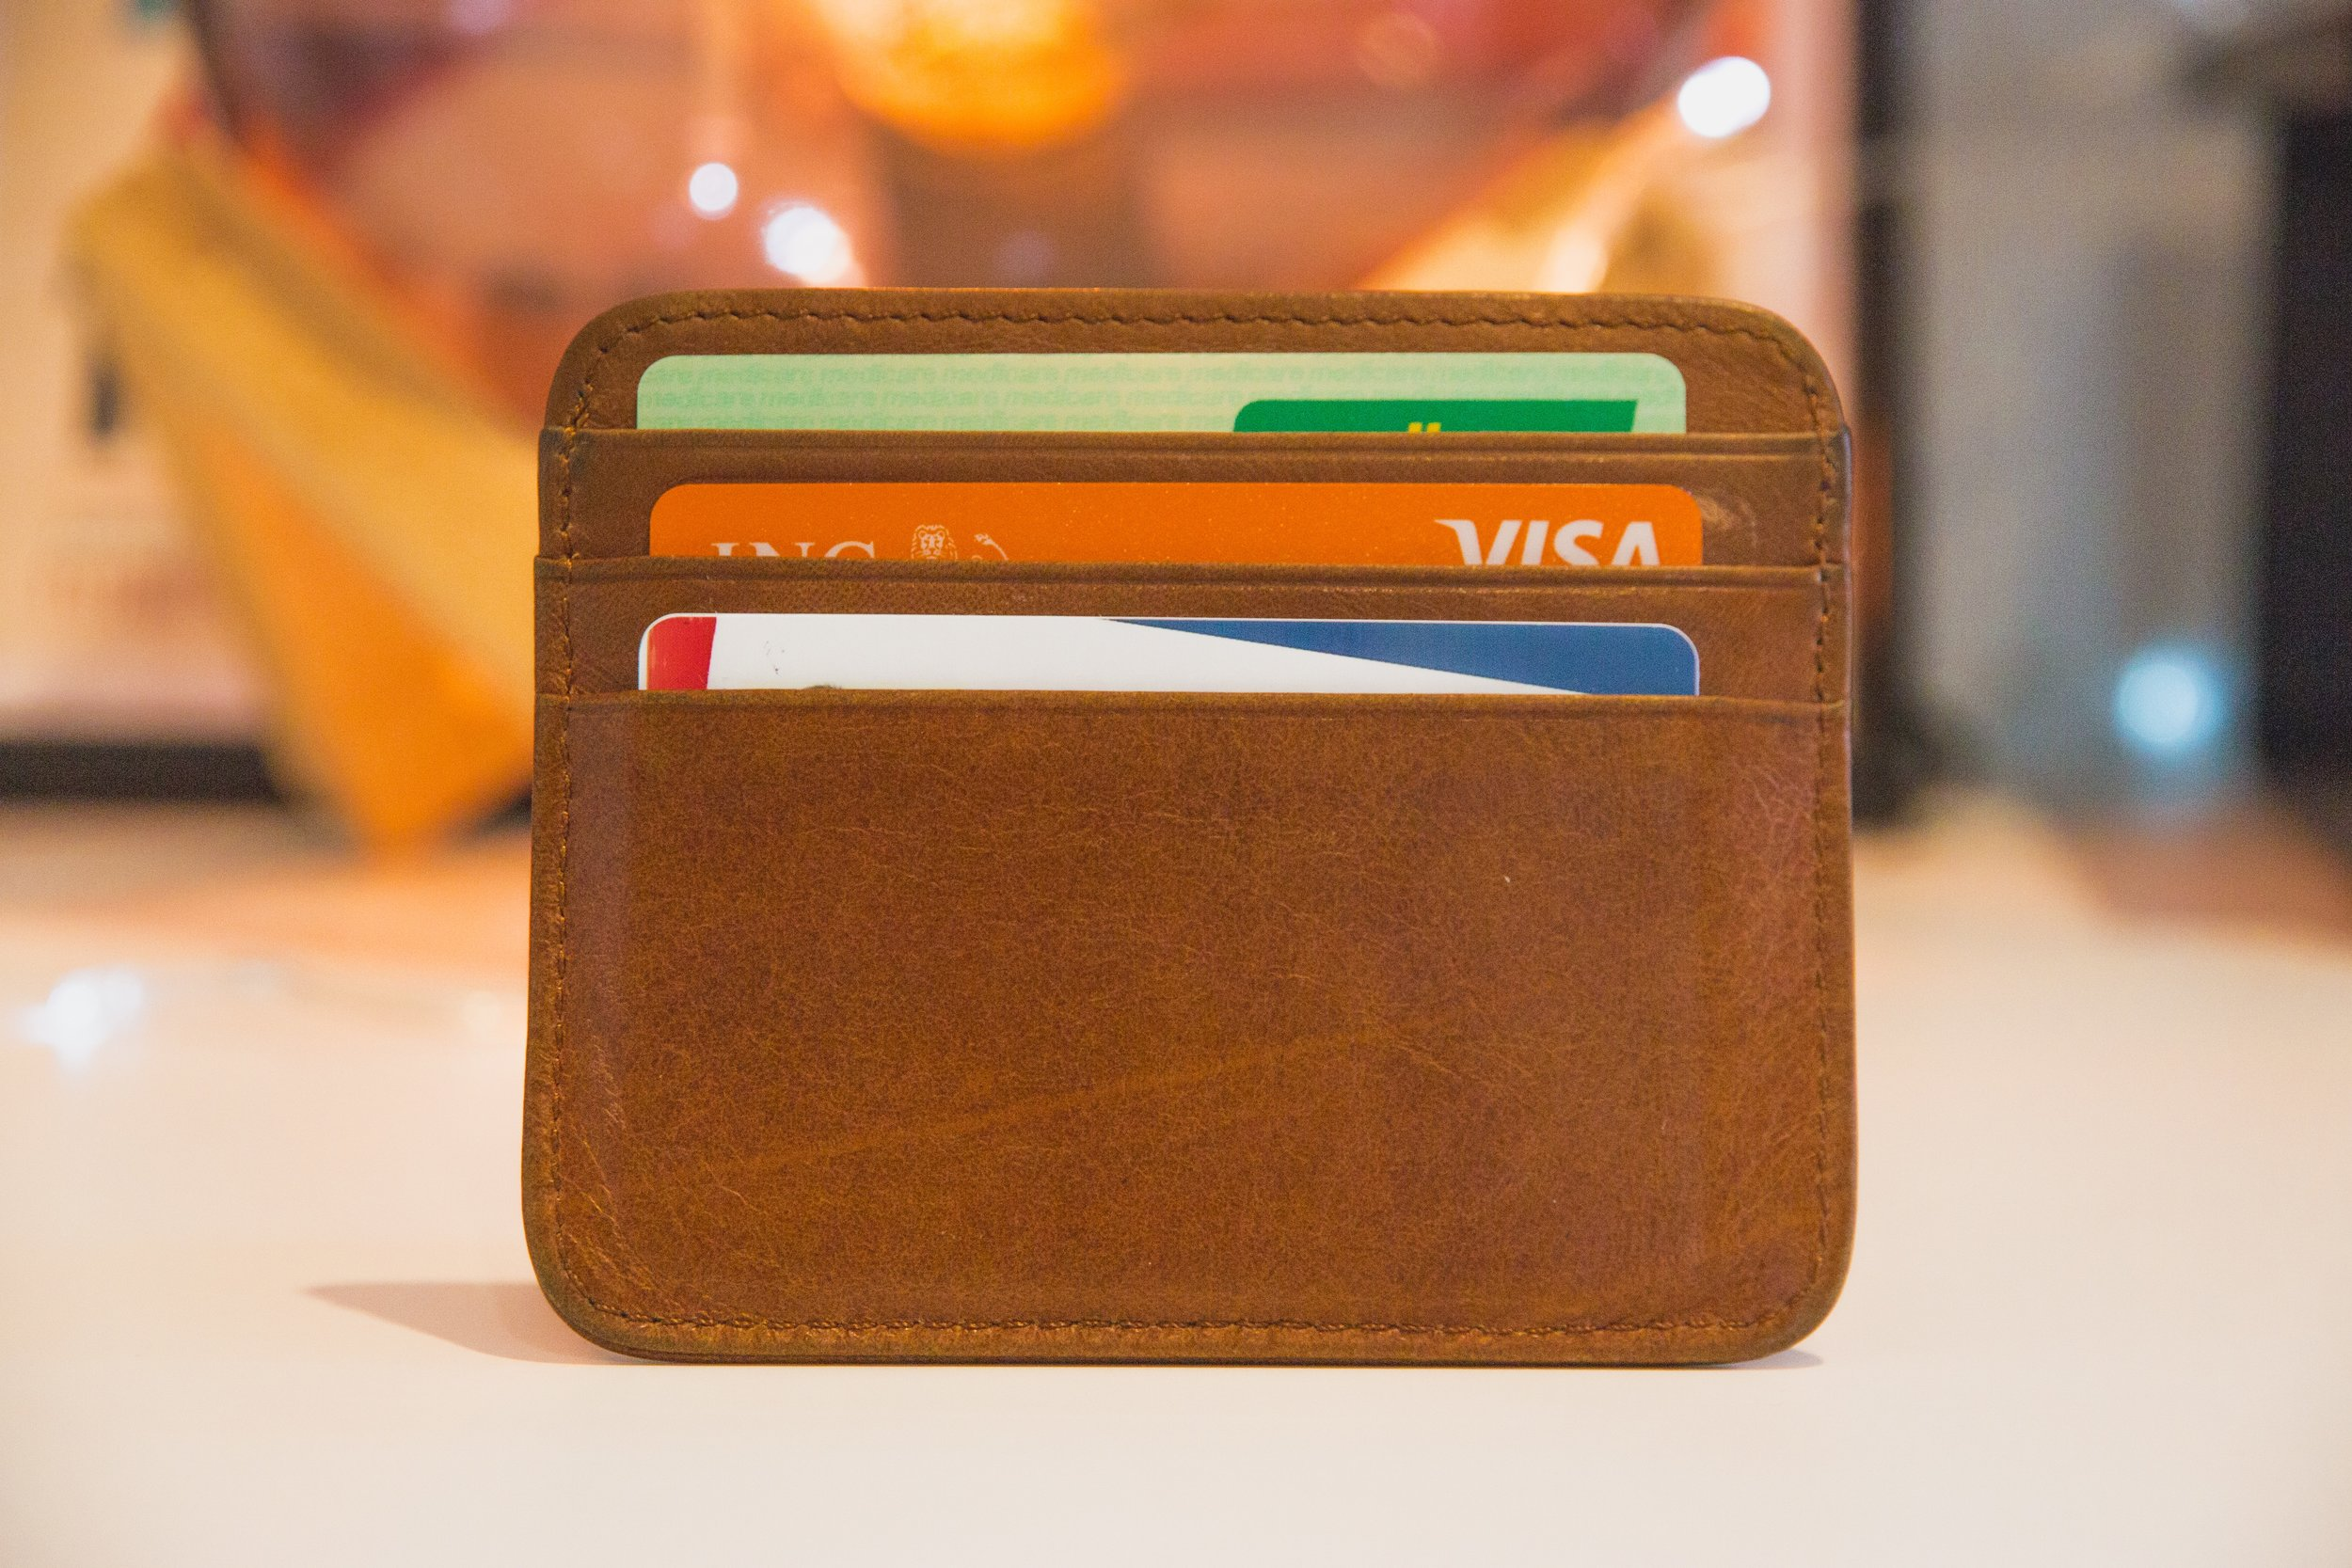 Image of credit cards that an entrepreneur might use to fund their business and lifestyle. Photo by  Web Hosting  on  Unsplash